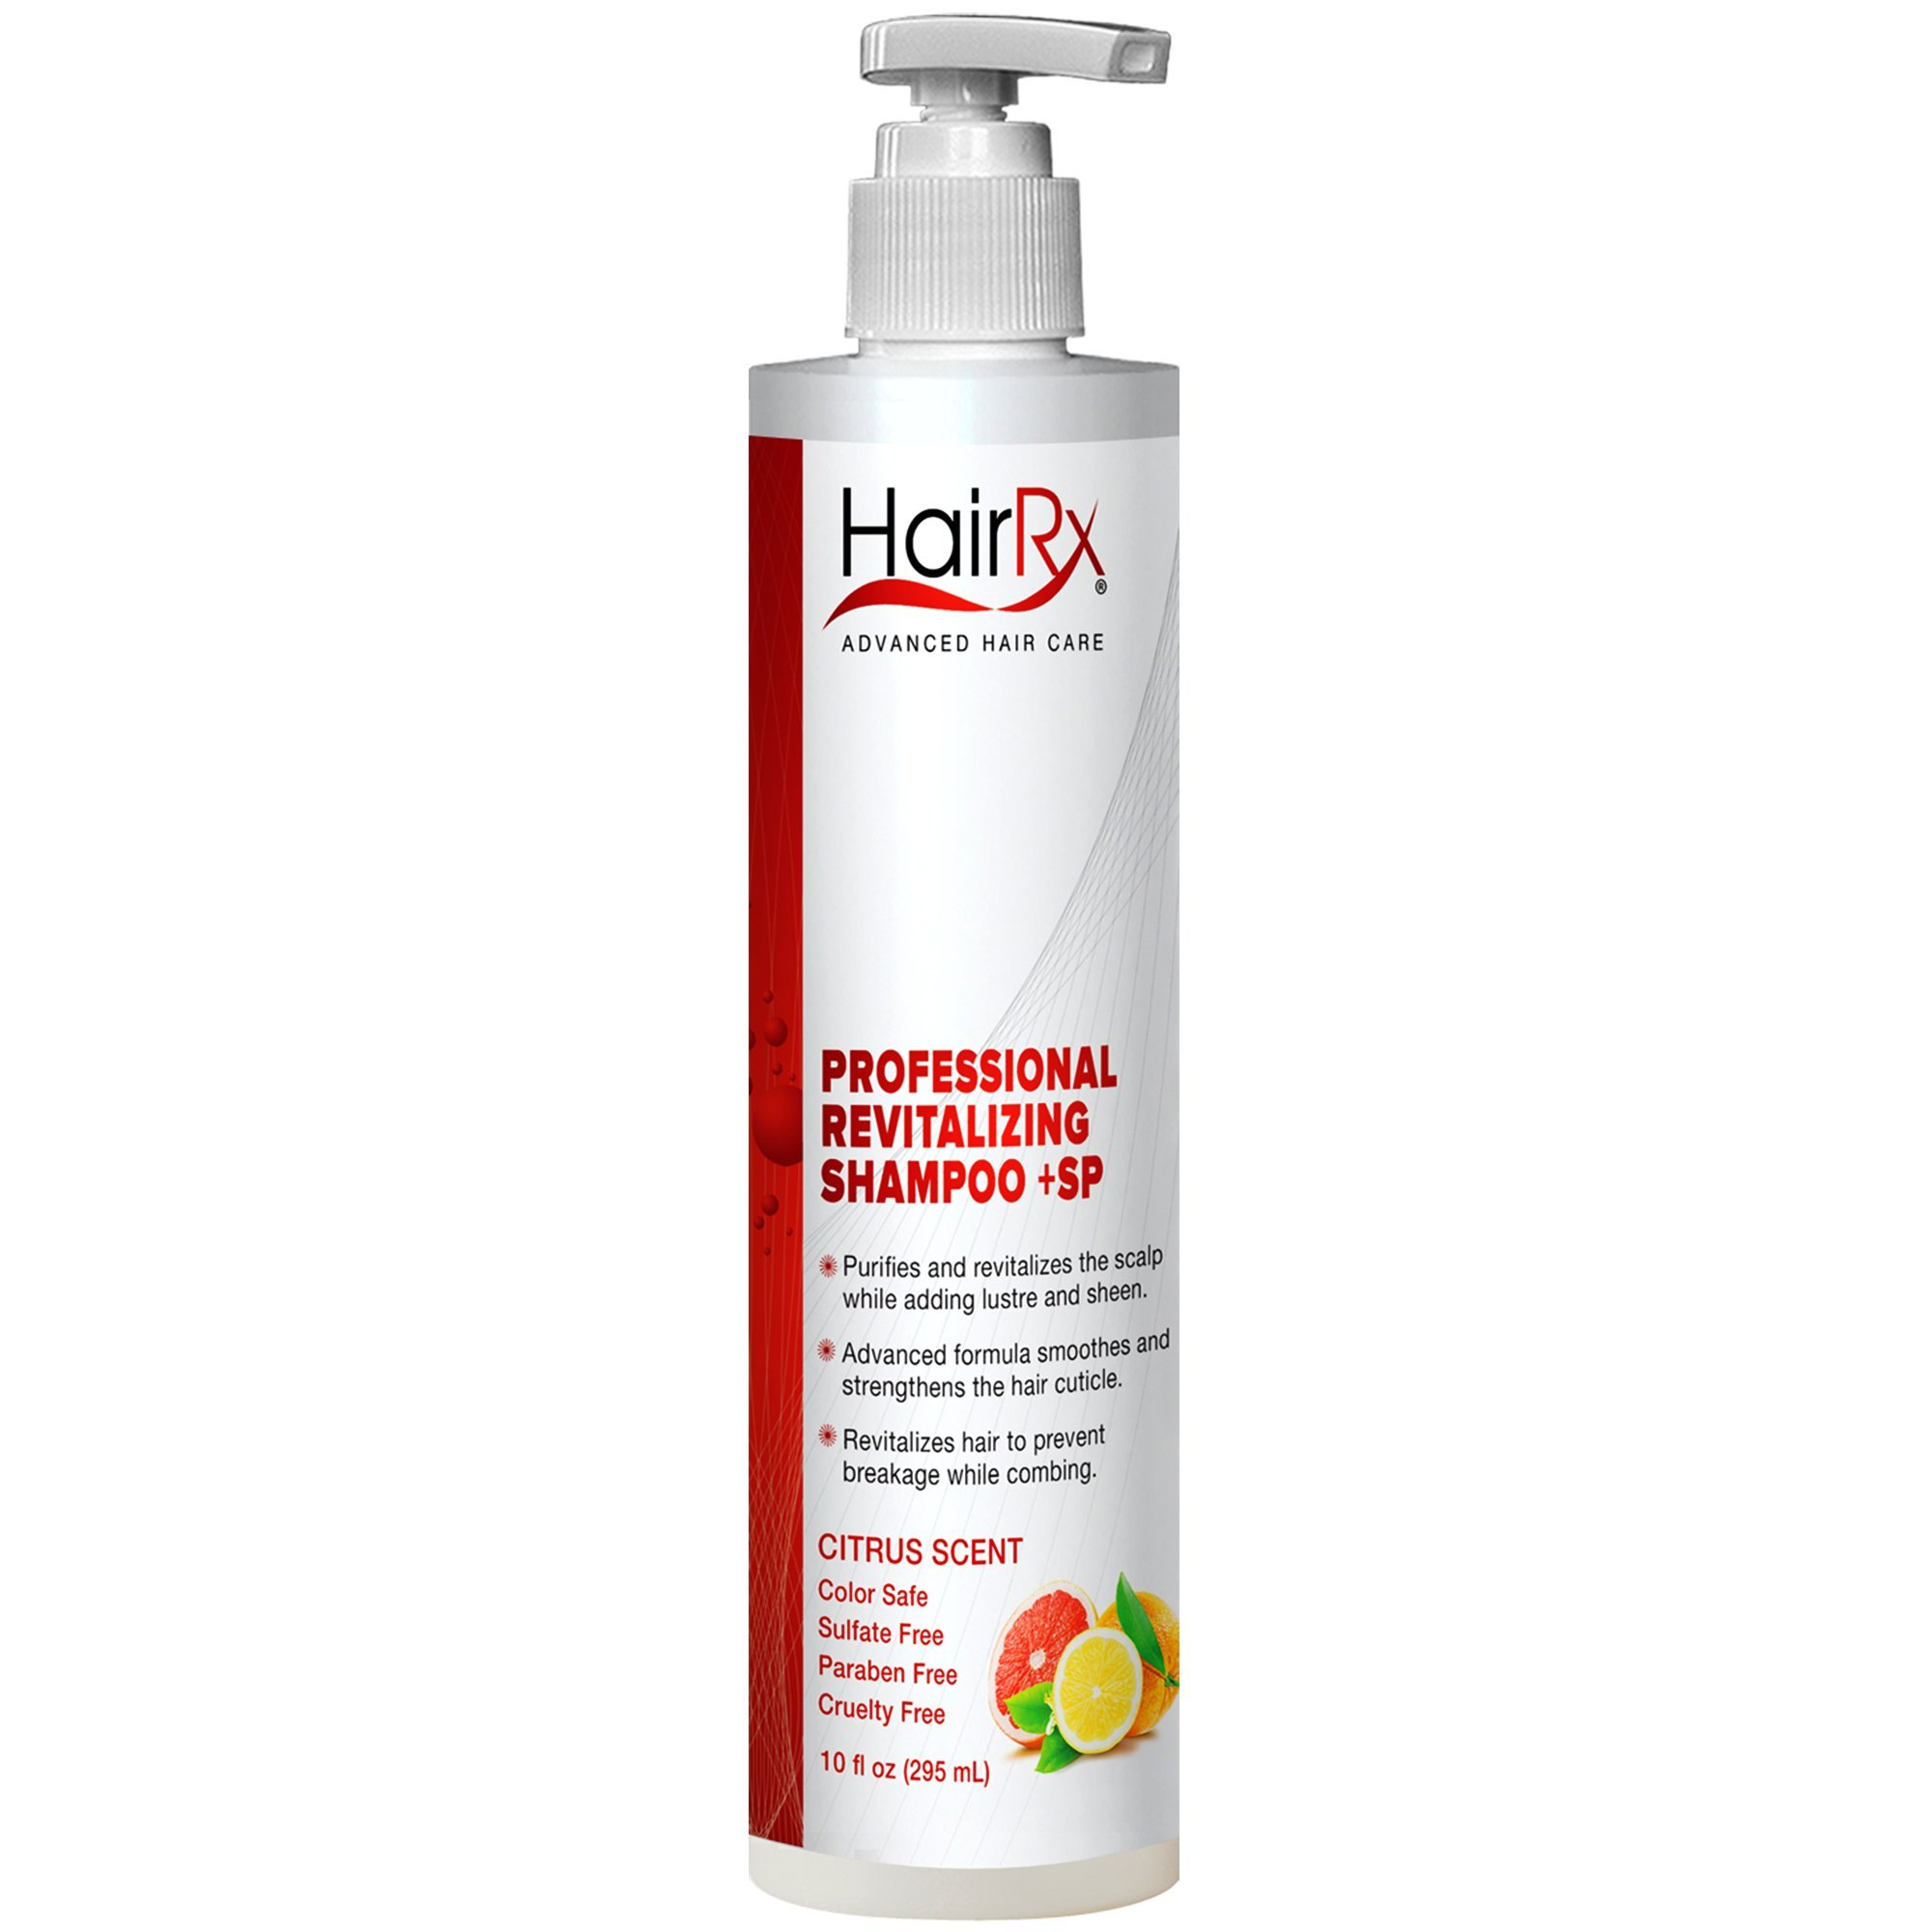 HairRx Professional Curl-Defining Shampoo with Pump